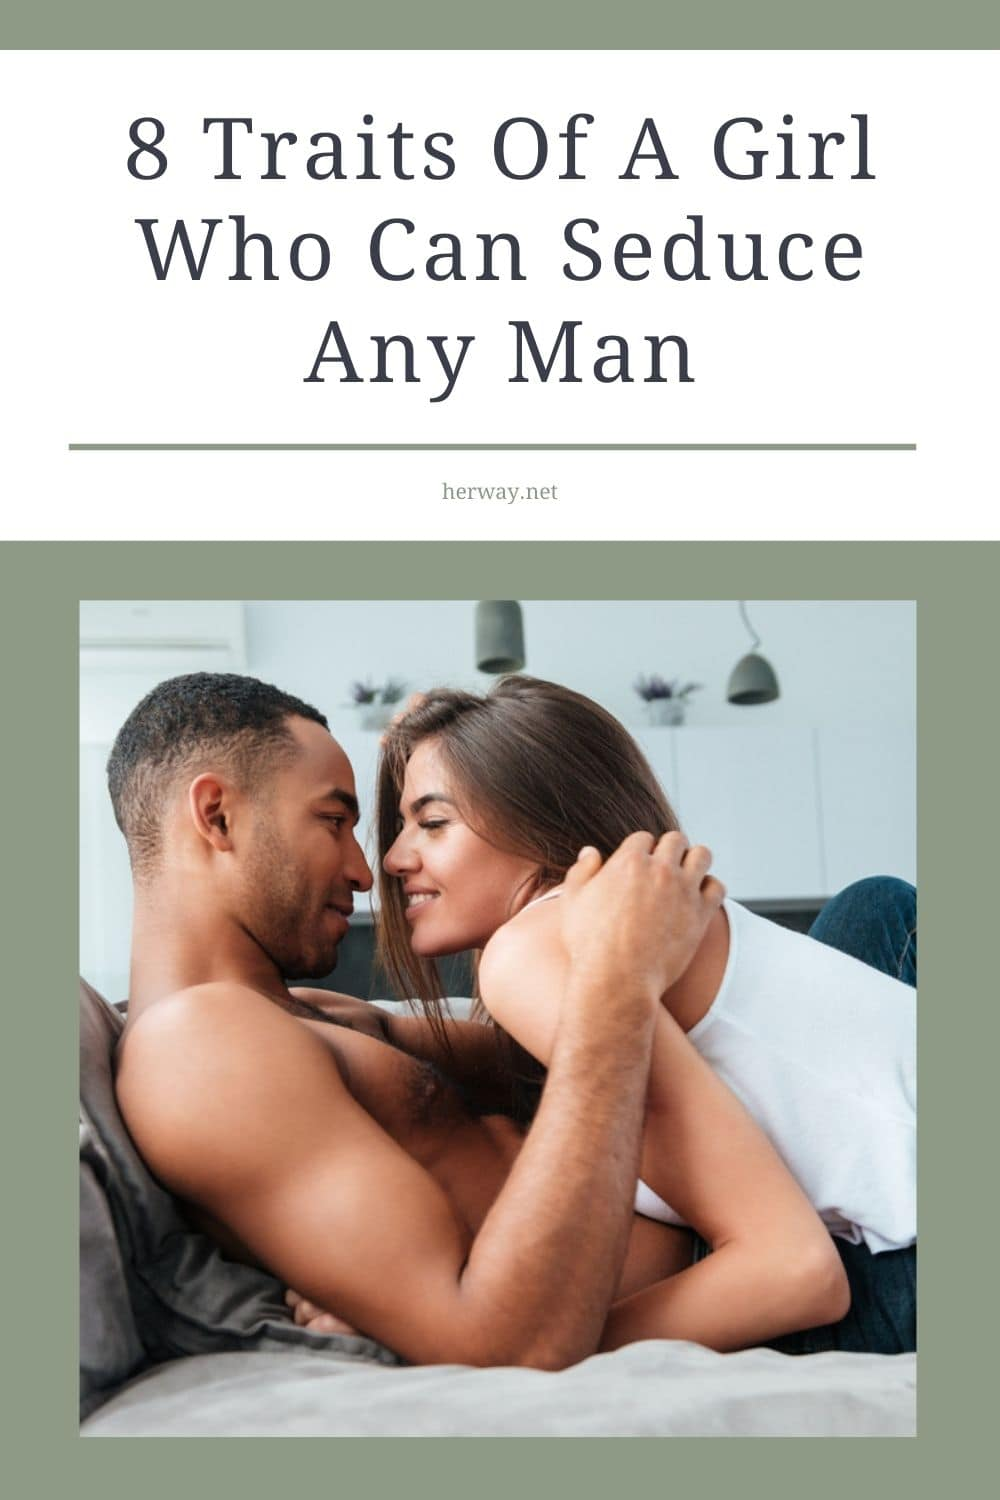 8 Traits Of A Girl Who Can Seduce Any Man